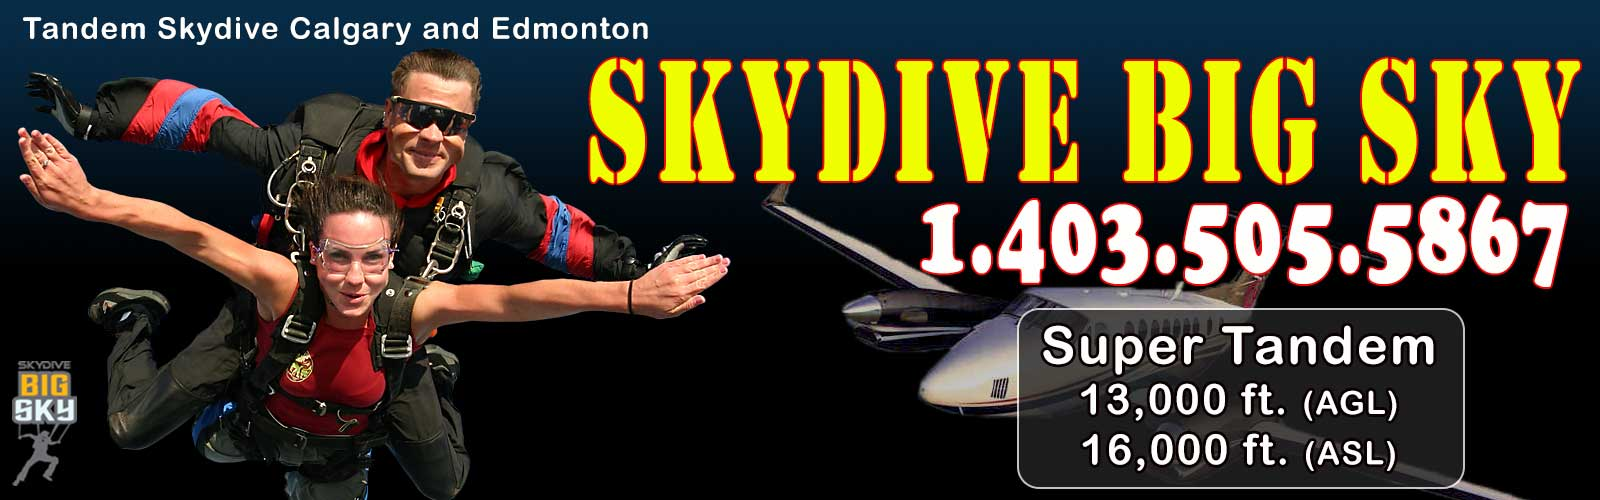 skydive calgary pricing